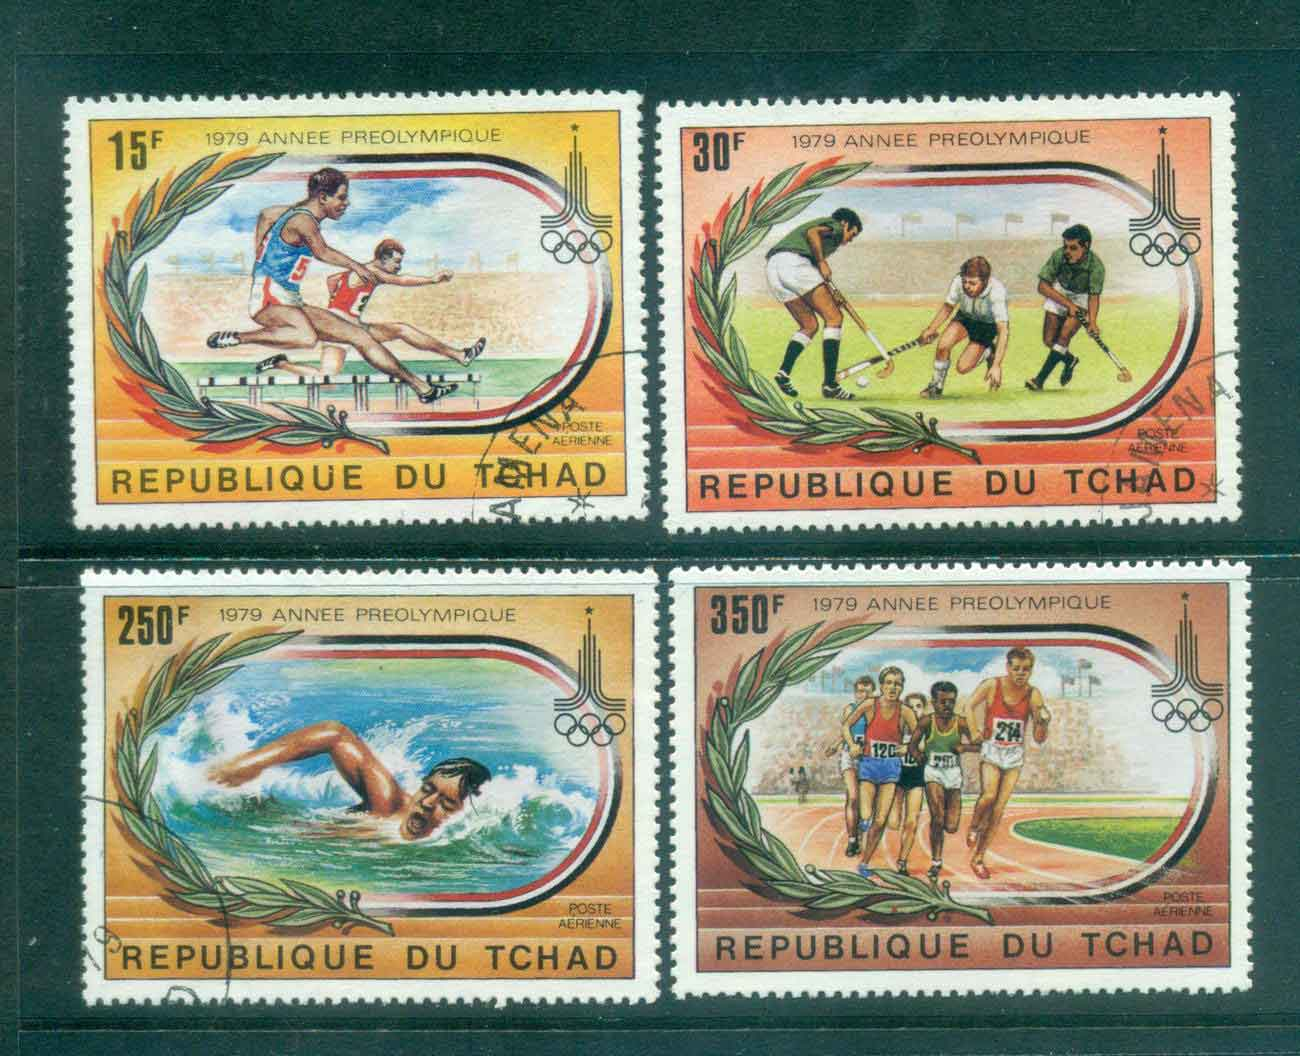 Chad 1979 Pre- Olympic Year CTO Lot46355